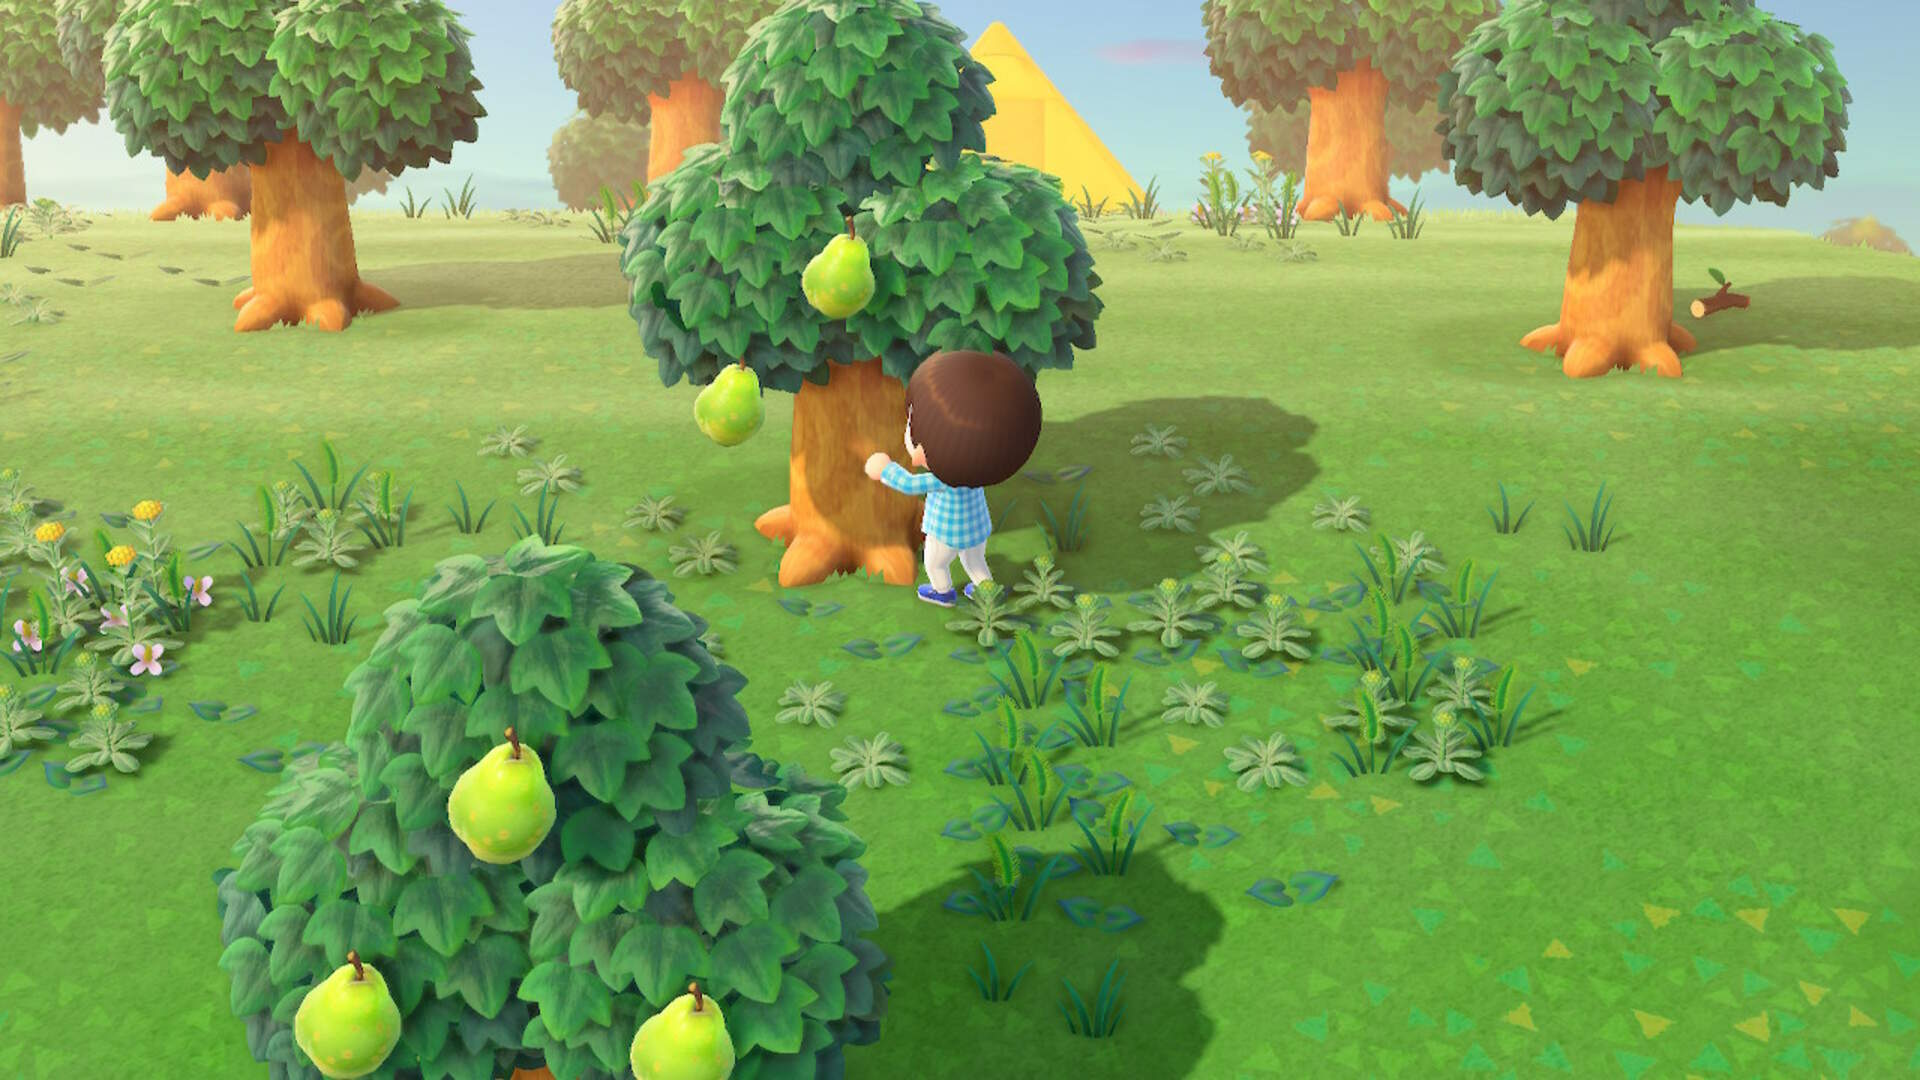 Animal Crossing New Horizons: What Fruits Can You Get On Your Island?